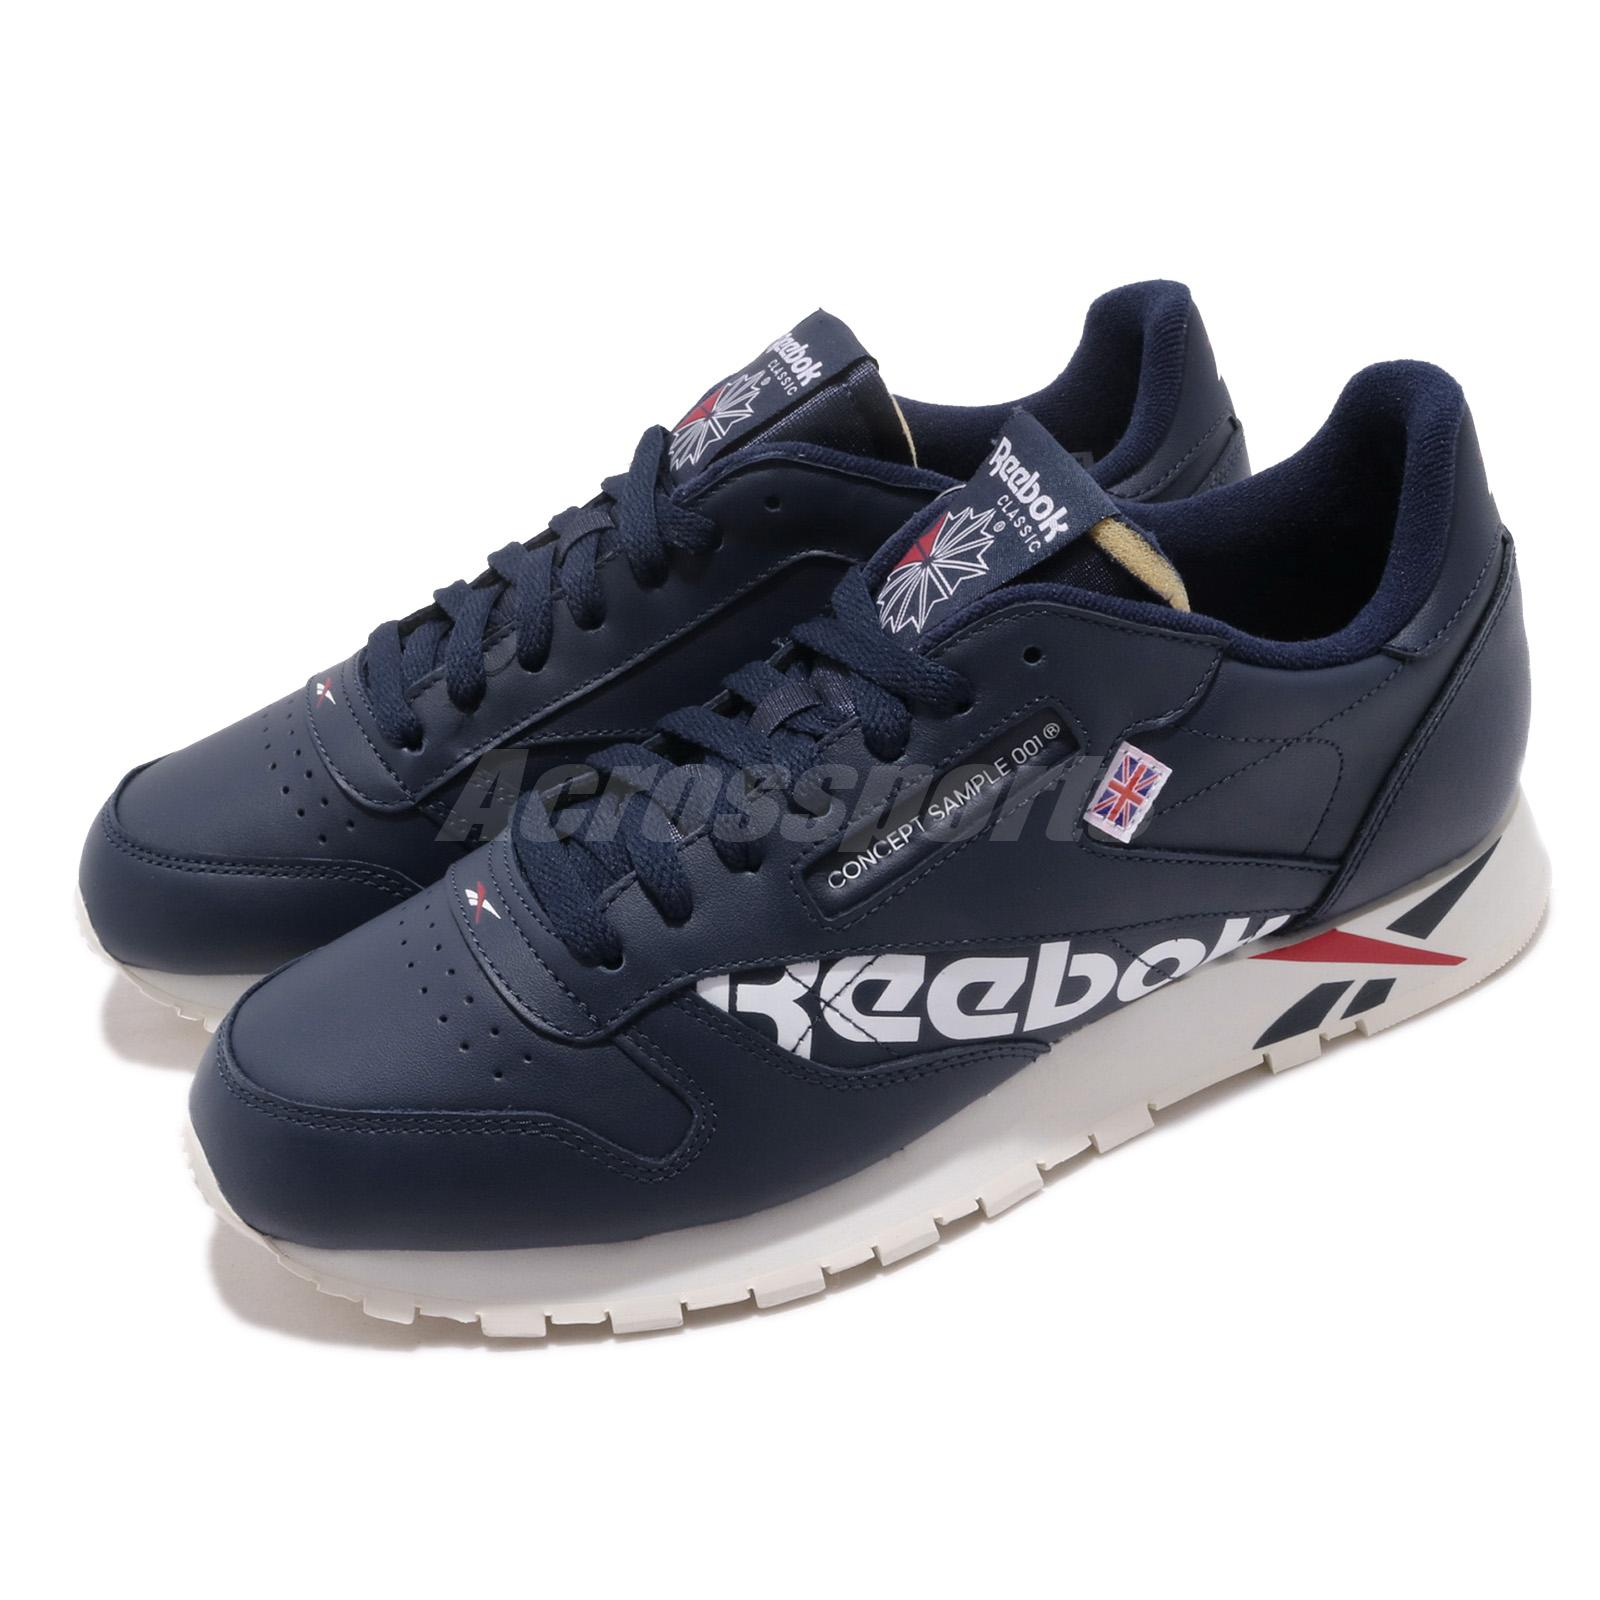 5e3acdee96a72 Details about Reebok Classic Leather Altered MU Navy White Red Chalk Men  Shoes Sneakers DV5050